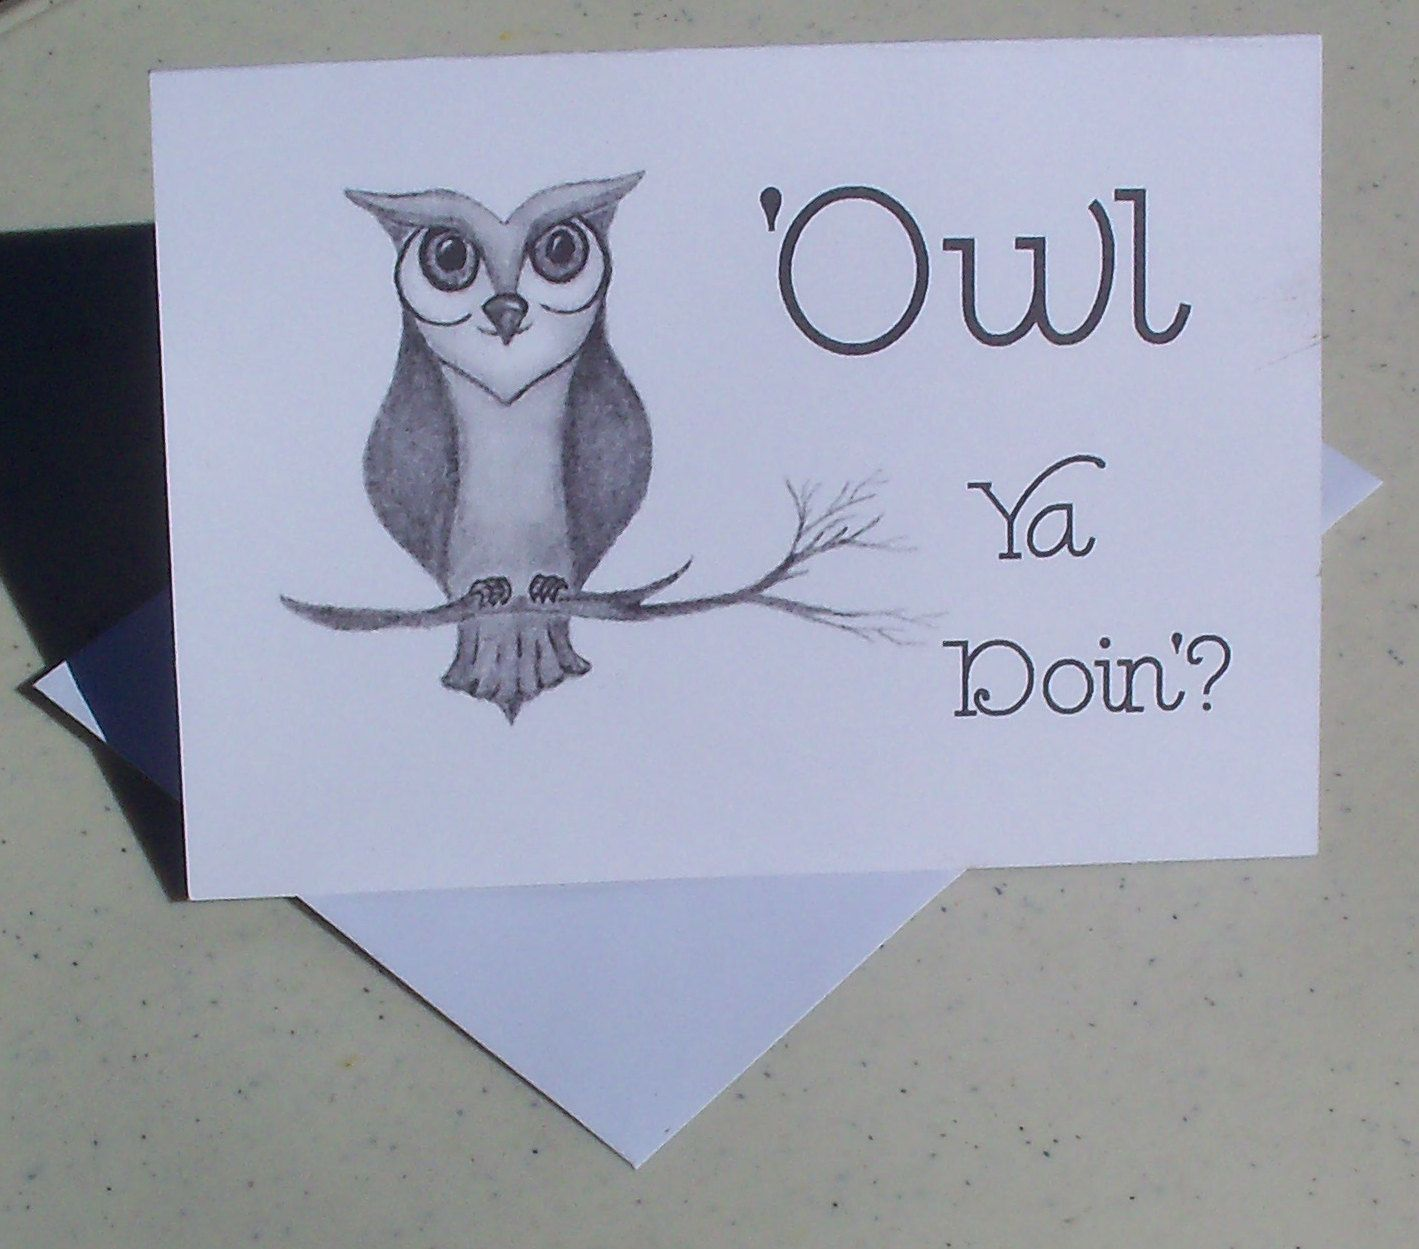 Owl thinking of you greeting card owl ya doin greeting card owl thinking of you greeting card owl ya doin greeting card note card greeting card sets blank cards art by loraartandstationery on etsy kristyandbryce Choice Image